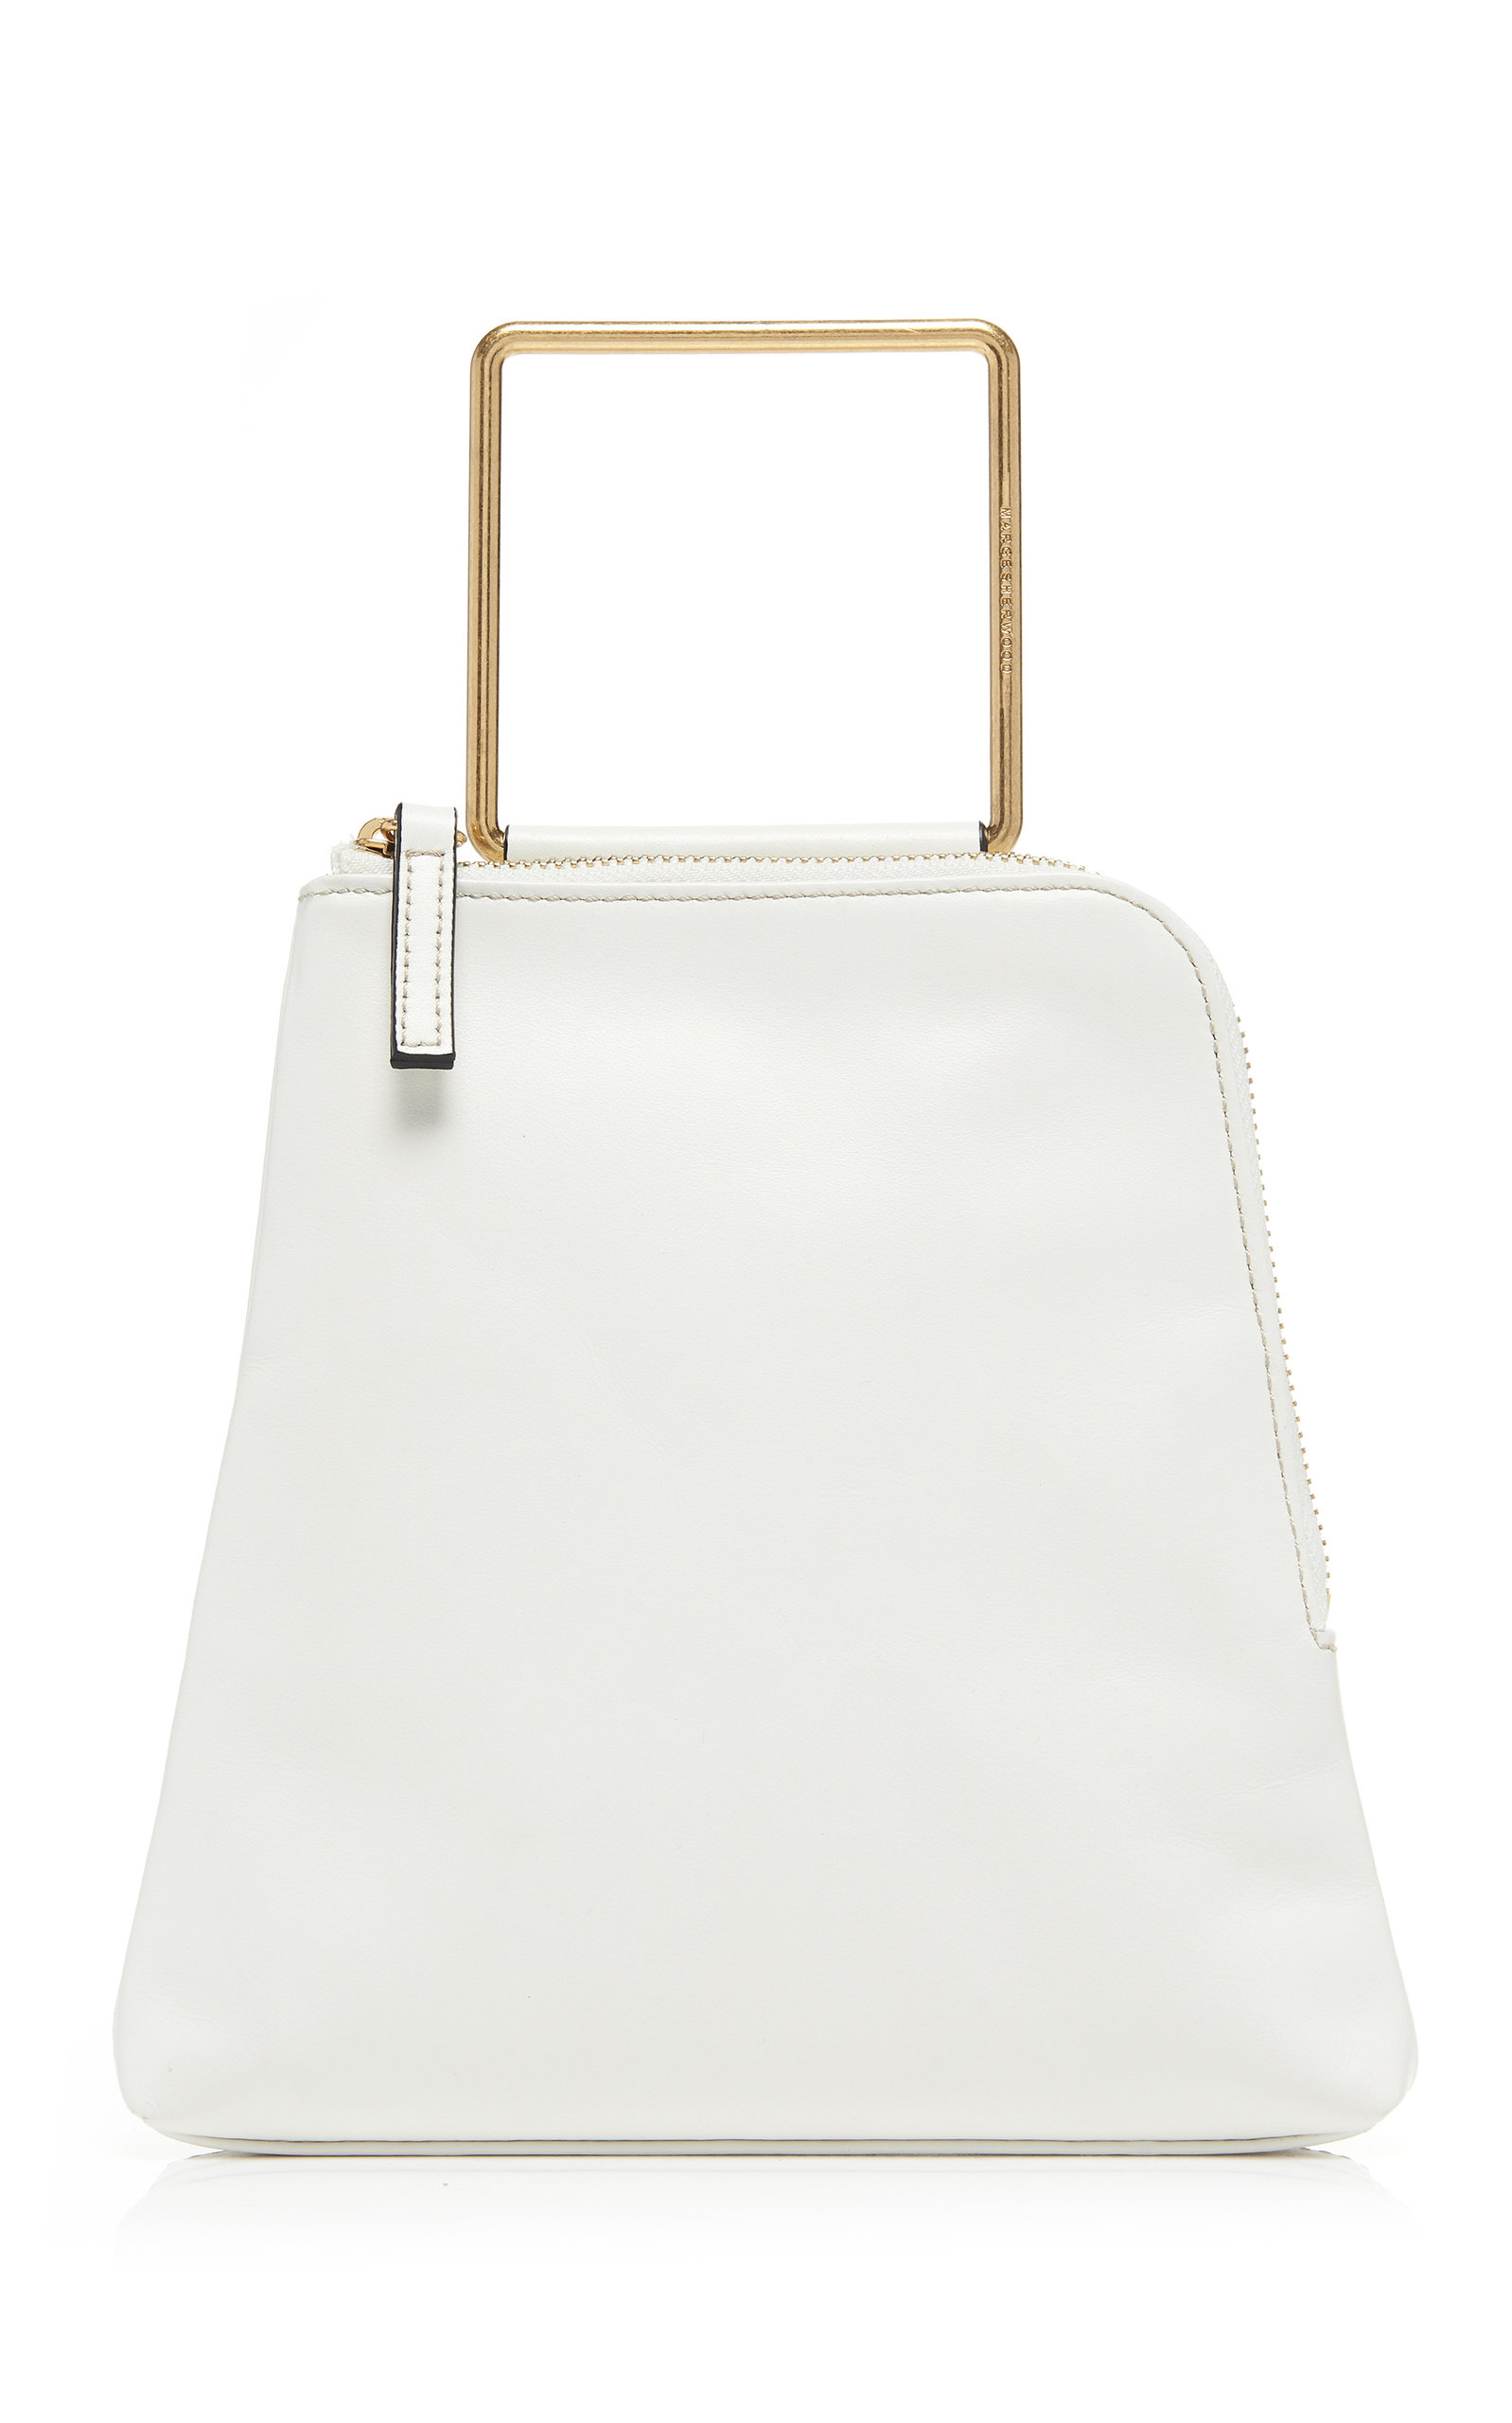 Marge Sherwood Breeze Leather Top Handle Bag In White